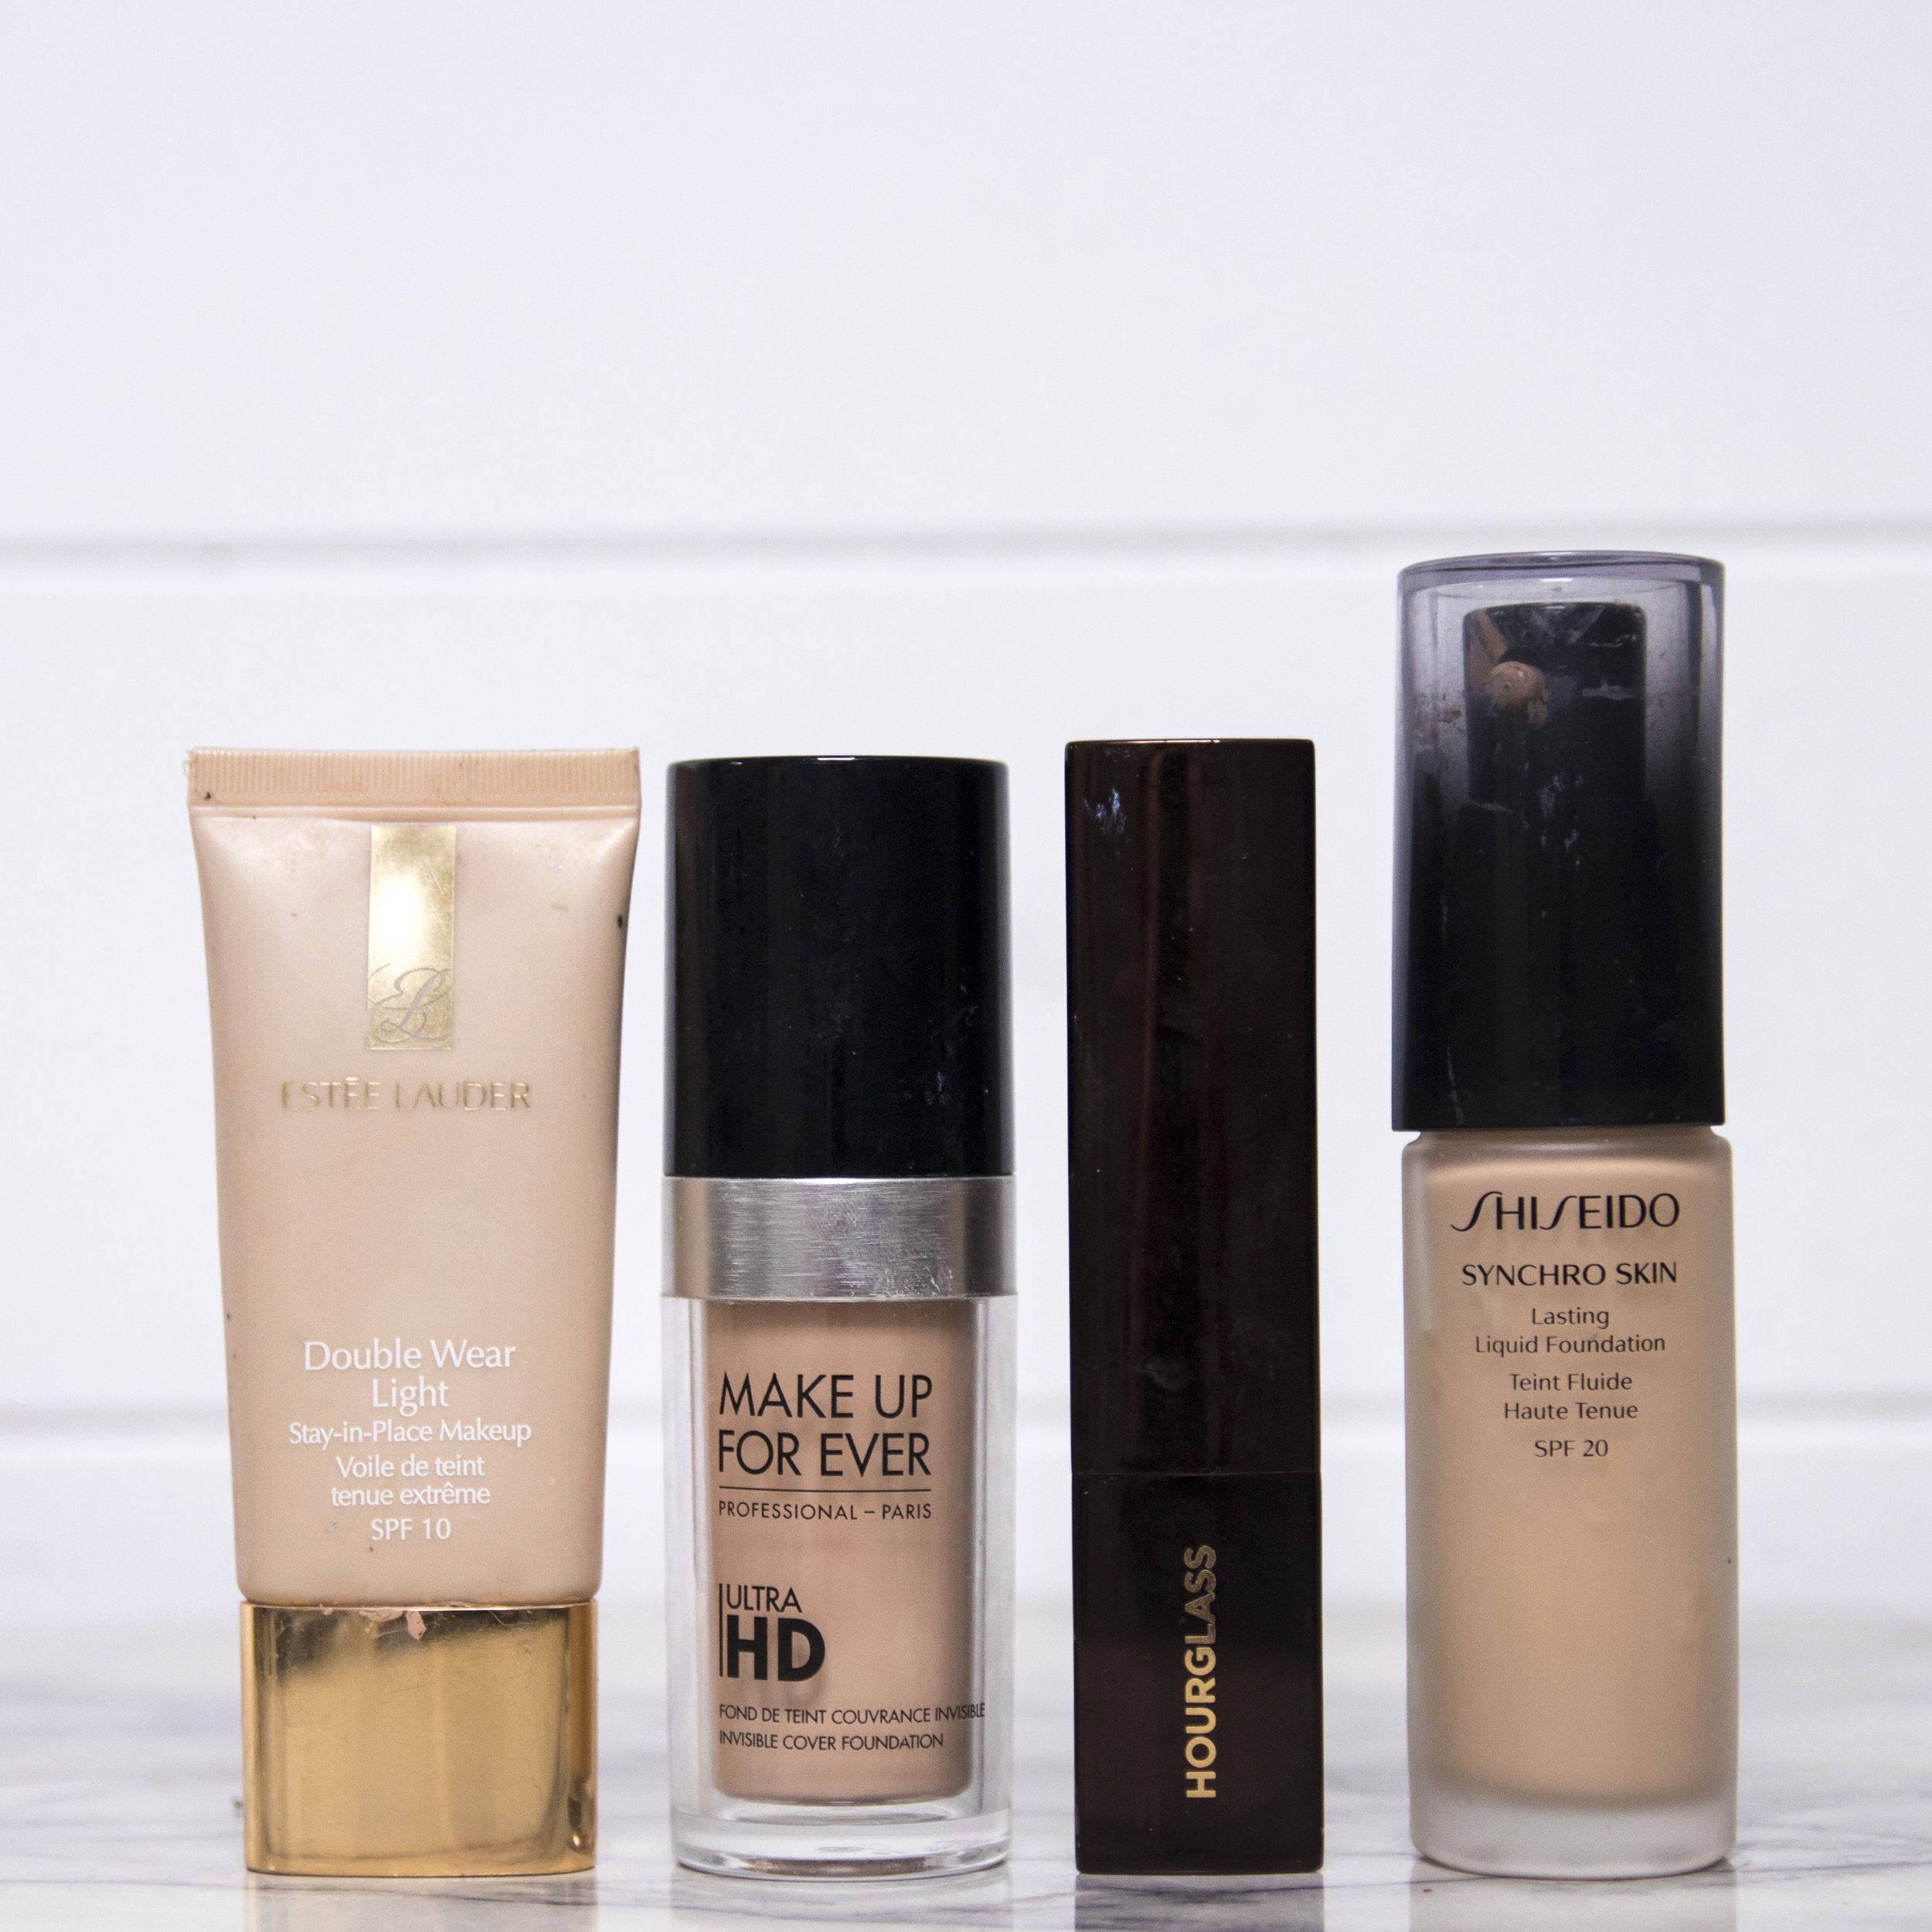 The Best High End Foundations For Oily Skin Hello Sharon Farrell